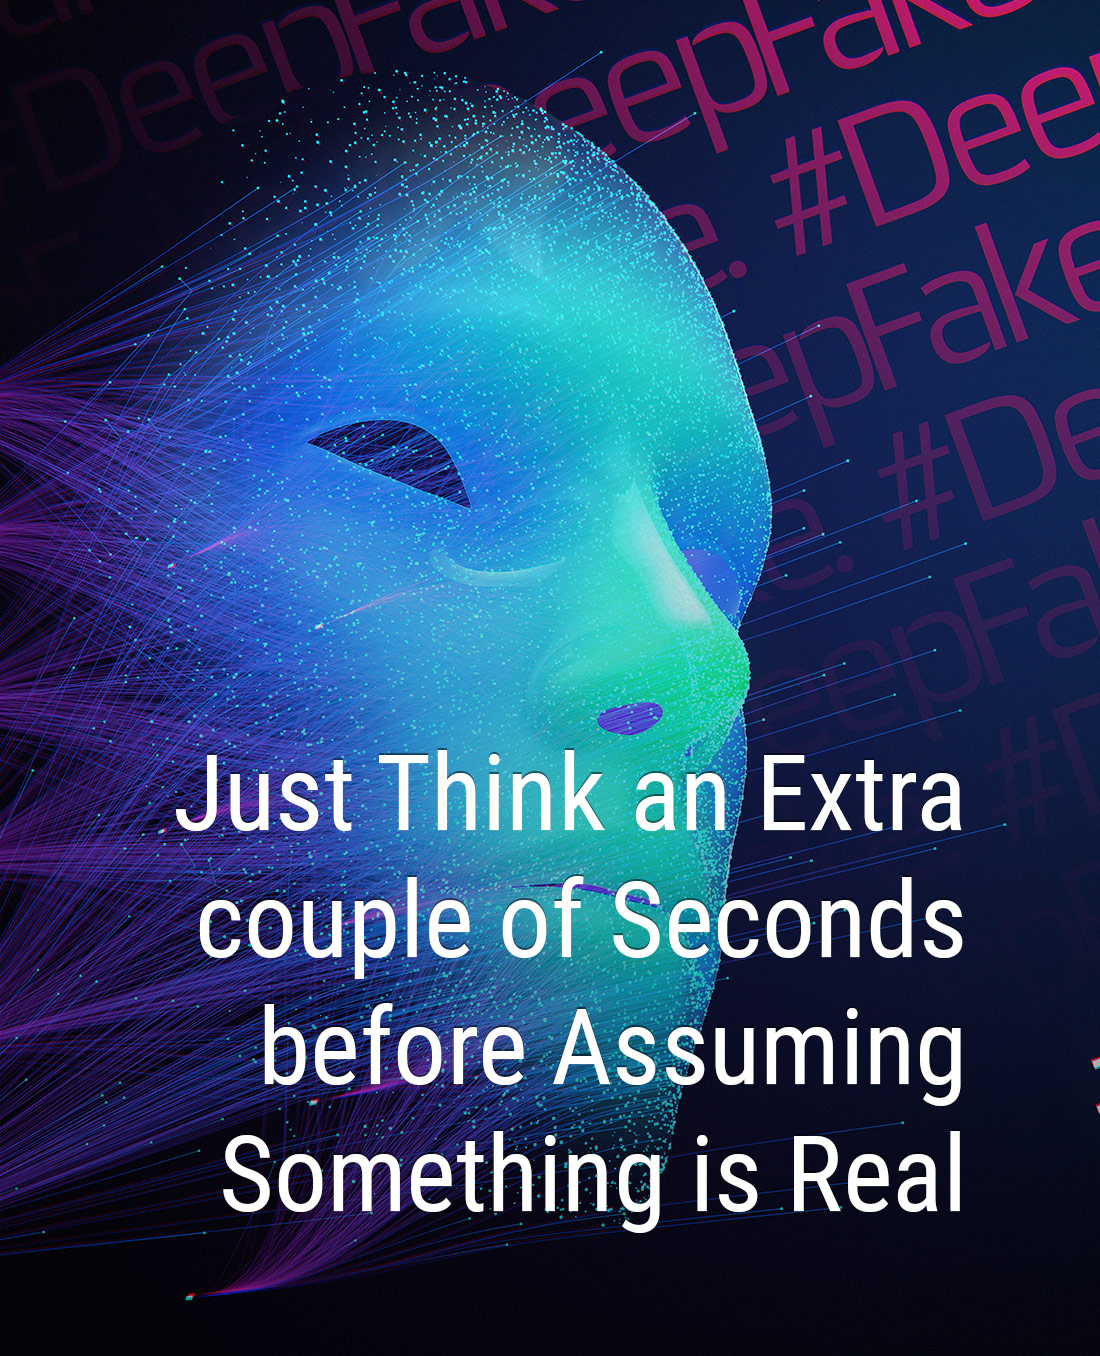 Just think an extra couple of seconds before assuming something is real.